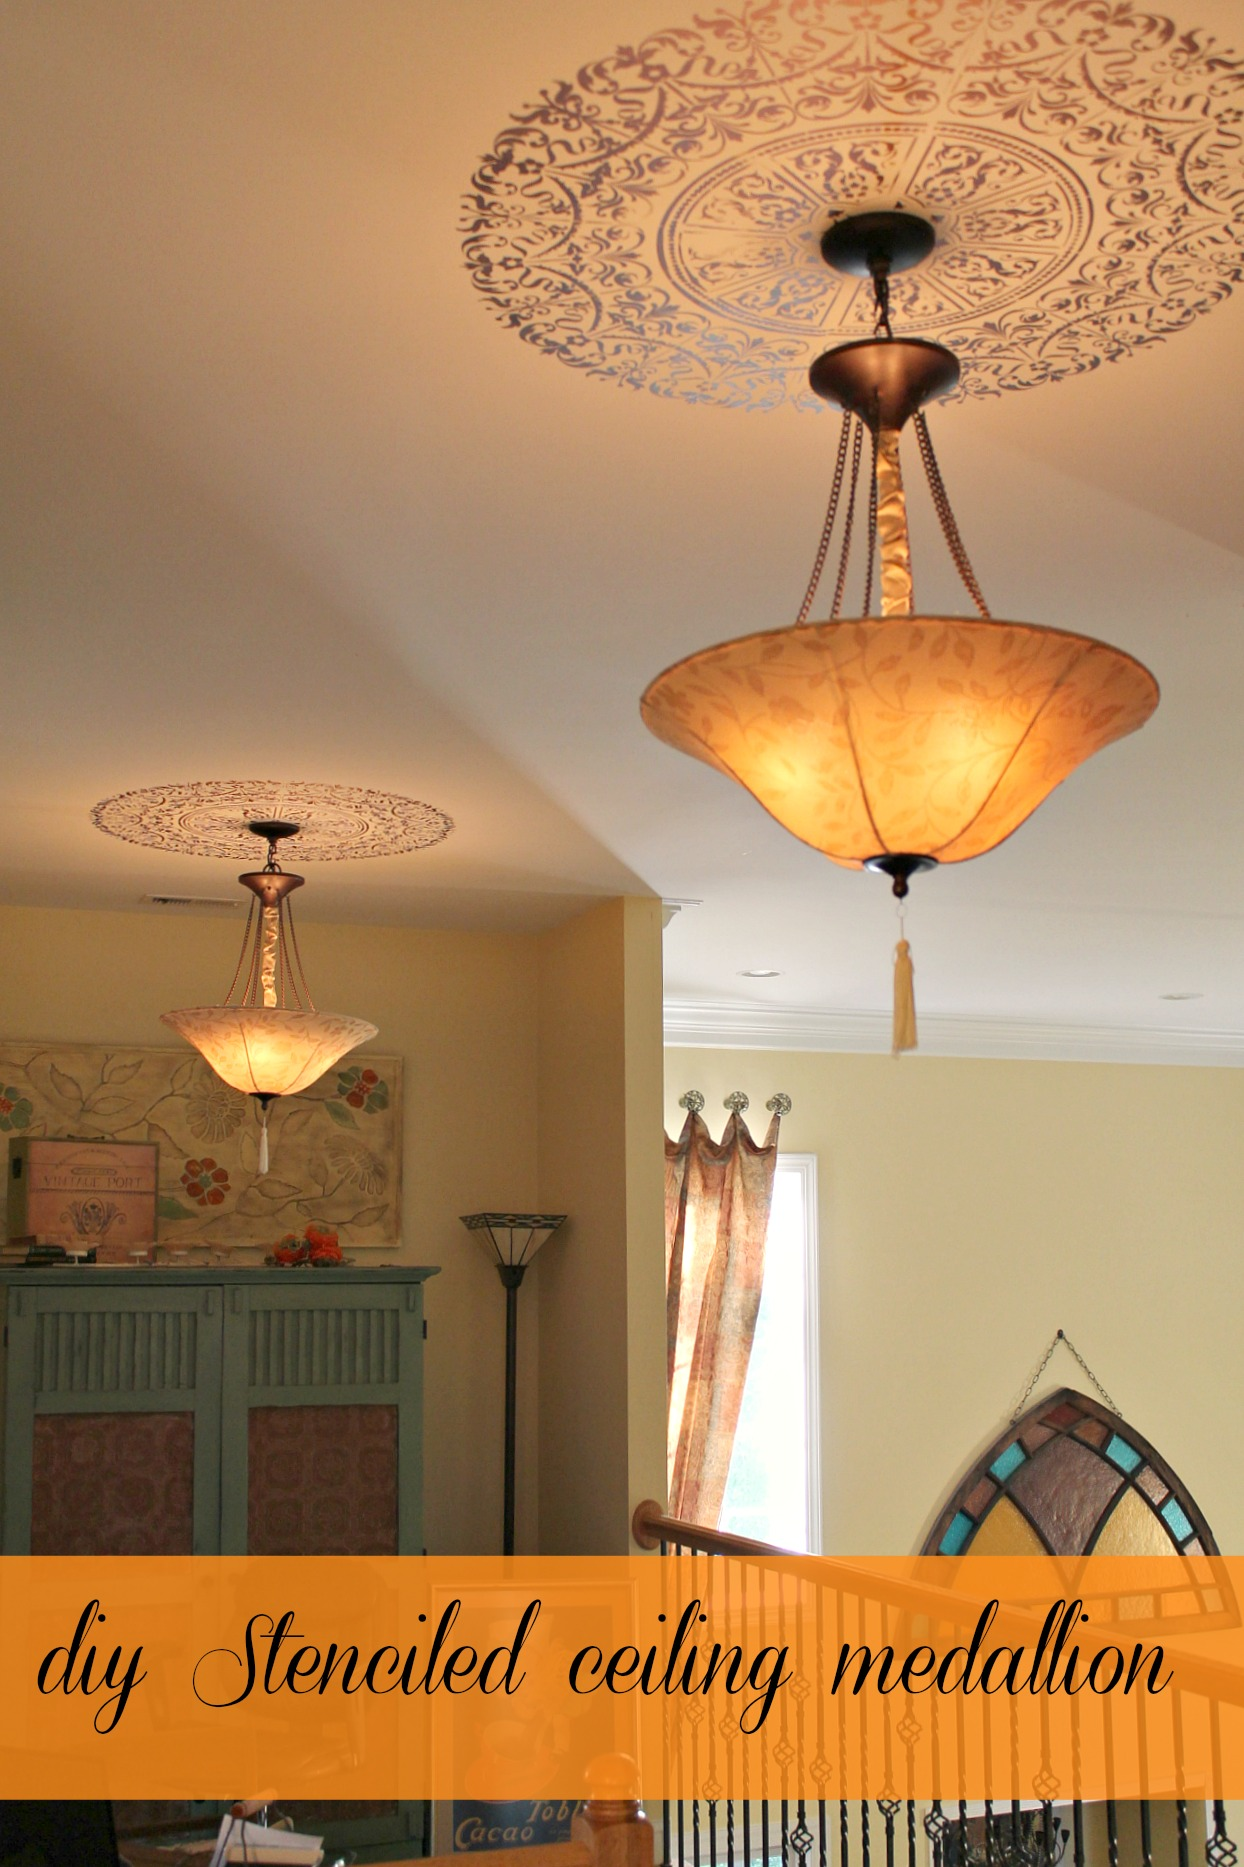 stenciled ceiling medallion